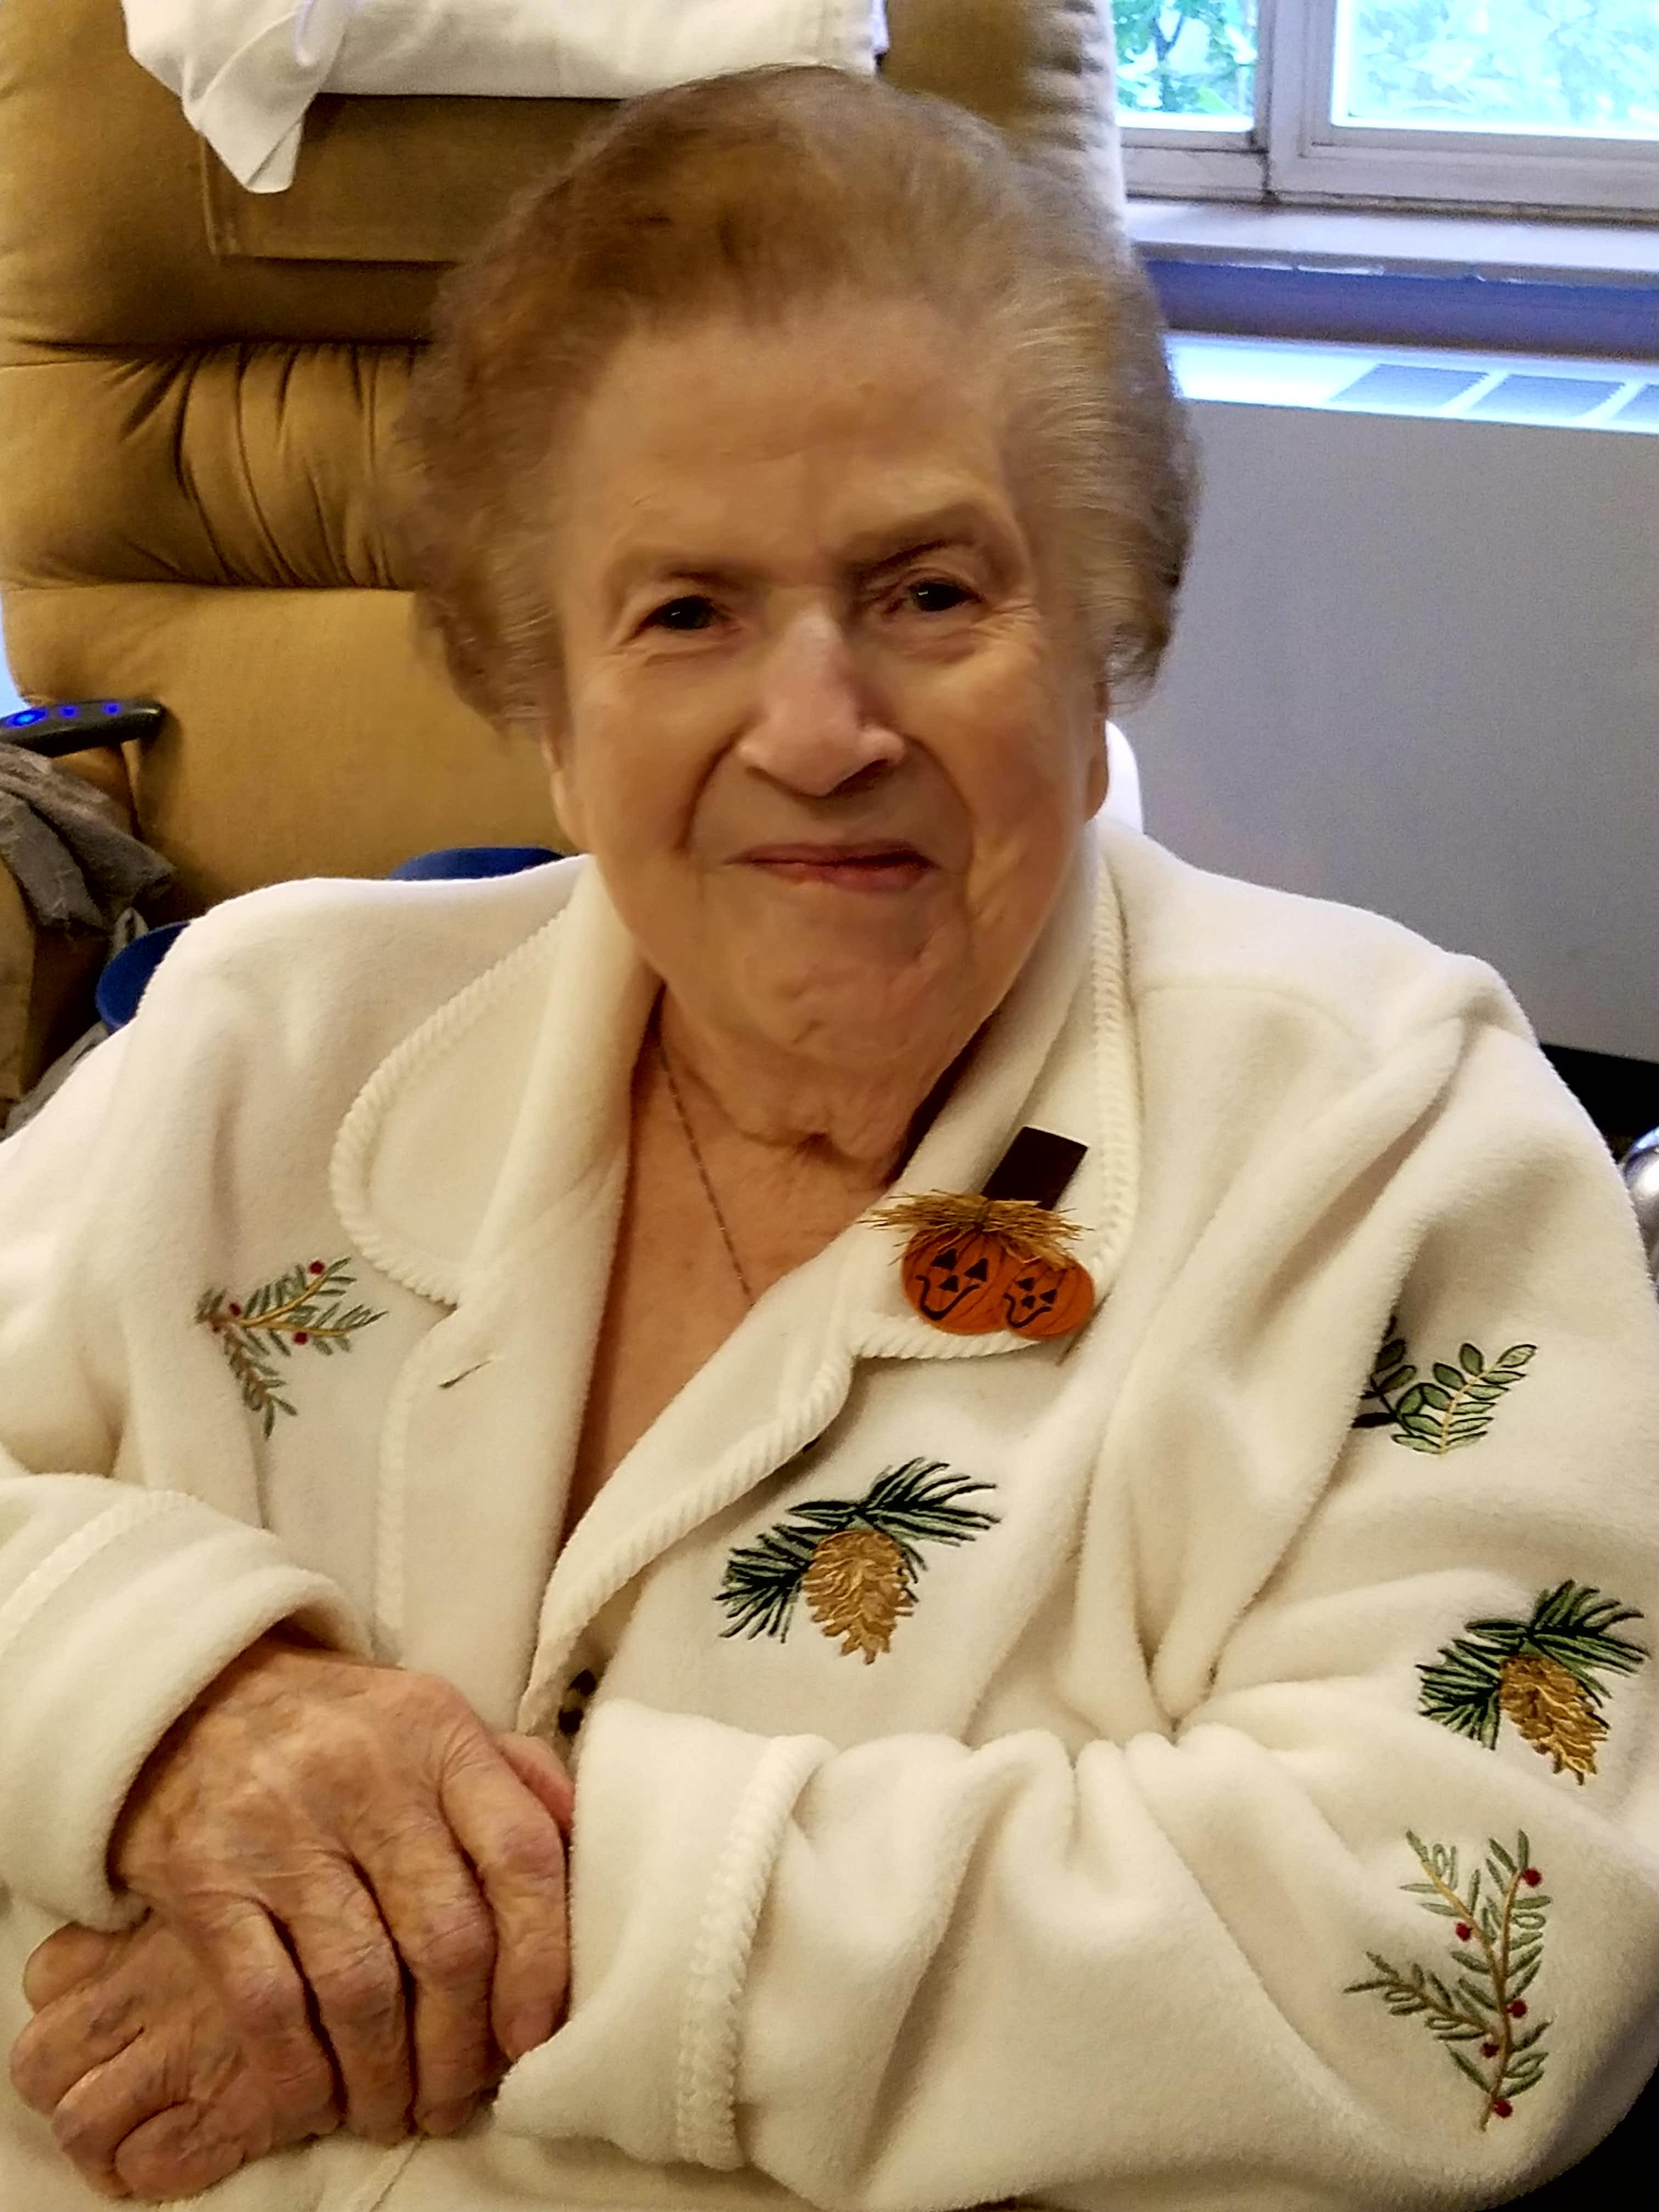 Wyuka funeral home cemetery obituarieswyuka funeral home delores m bergantzel 86 went to her heavenly home on october 21 2018 she was born on february 1 1932 in lincoln nebraska to ethel and ralph brammer izmirmasajfo